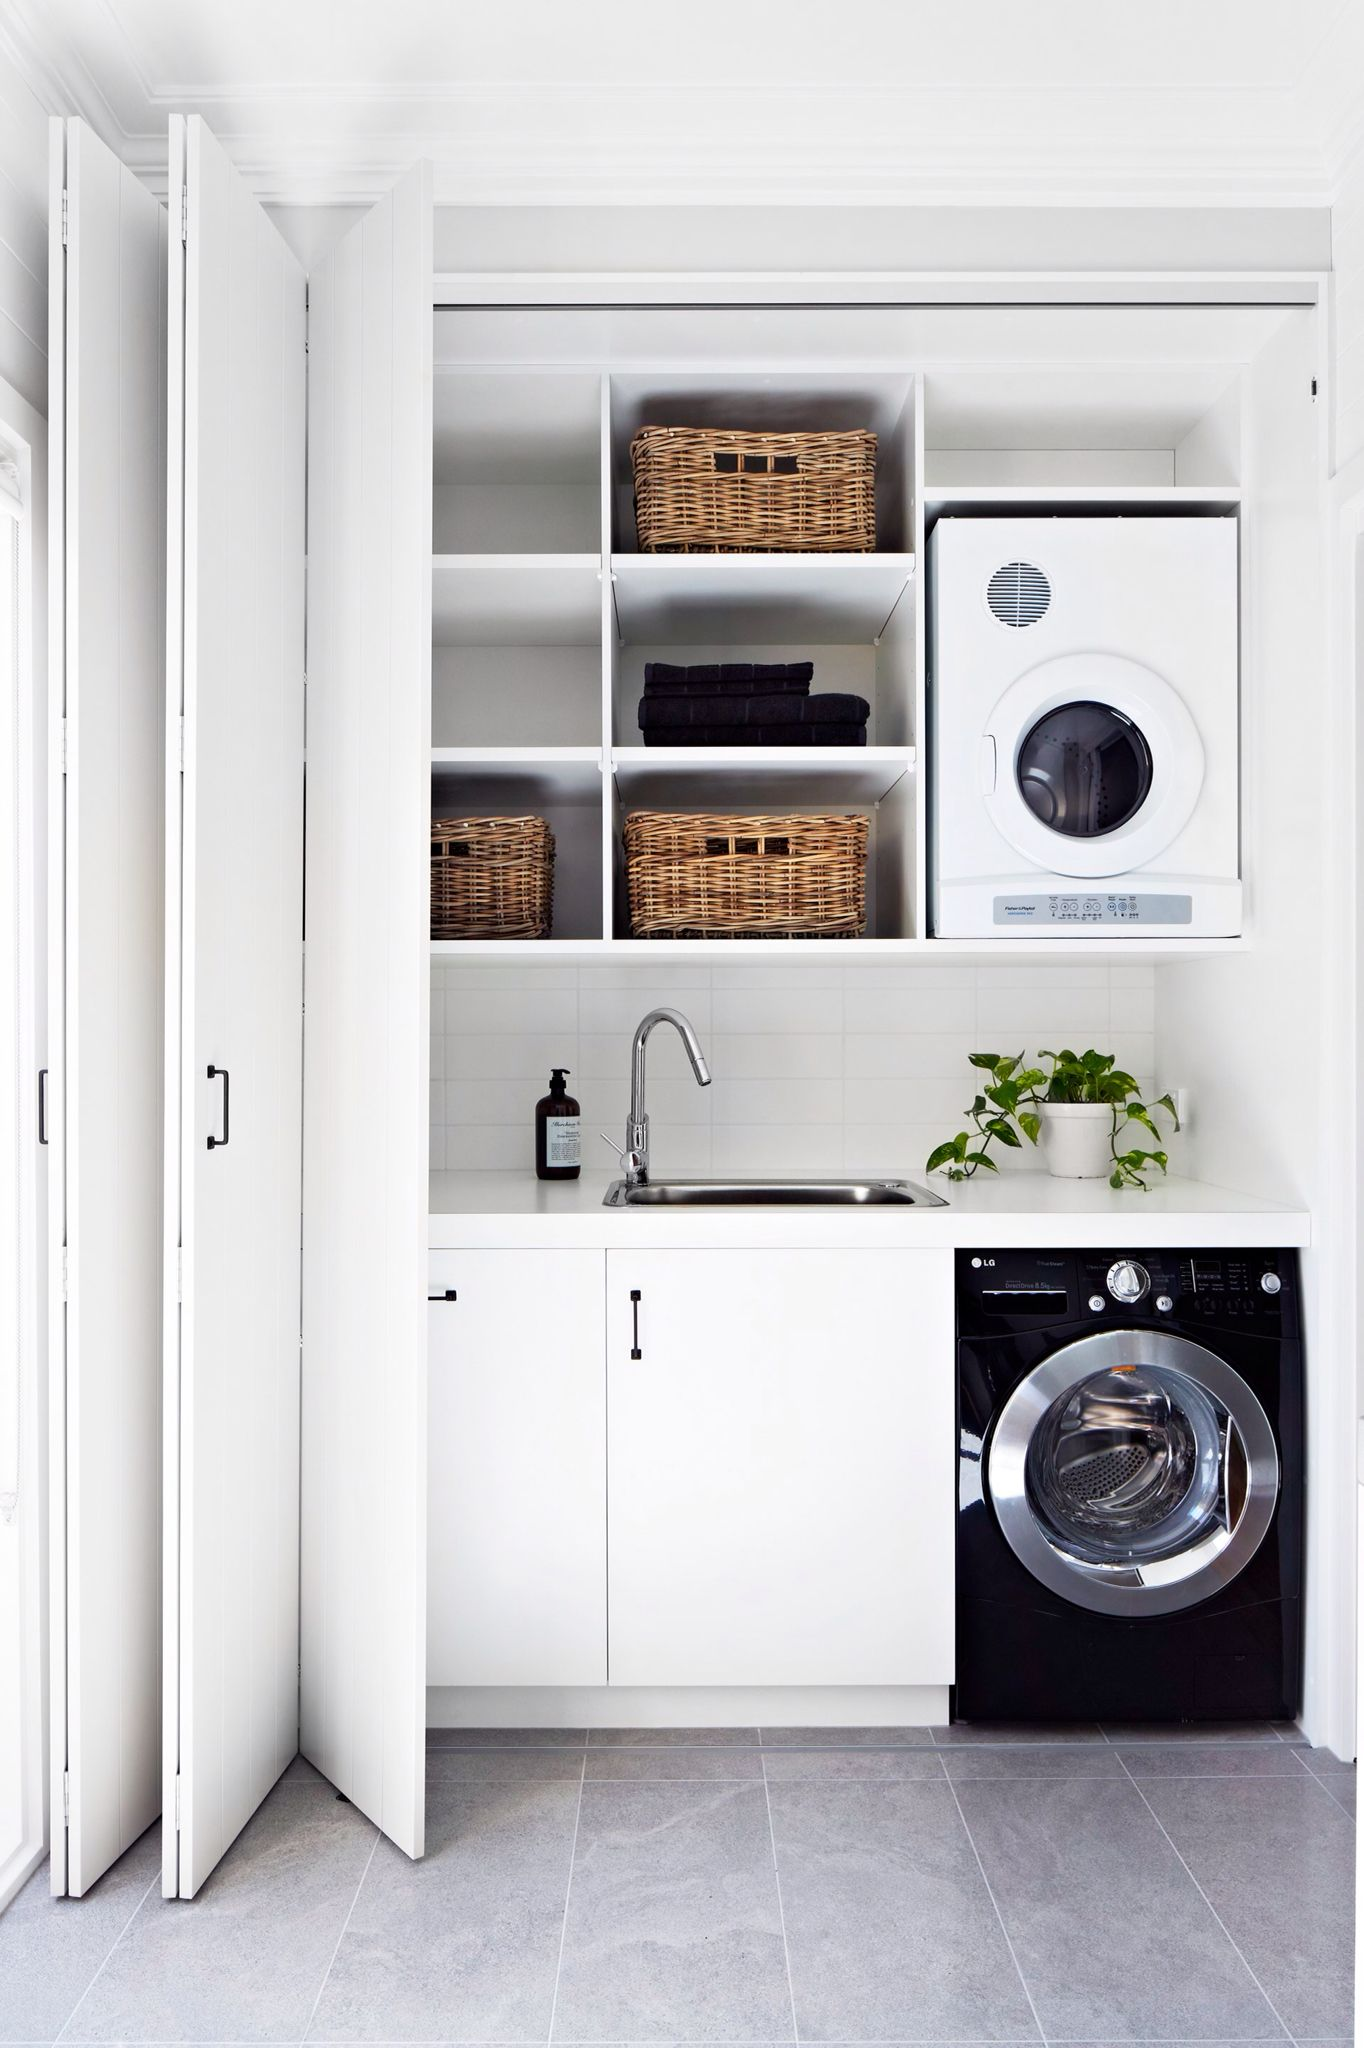 In Bathroom European Laundry Laundry In Bathroom Small Laundry Rooms Laundry Design